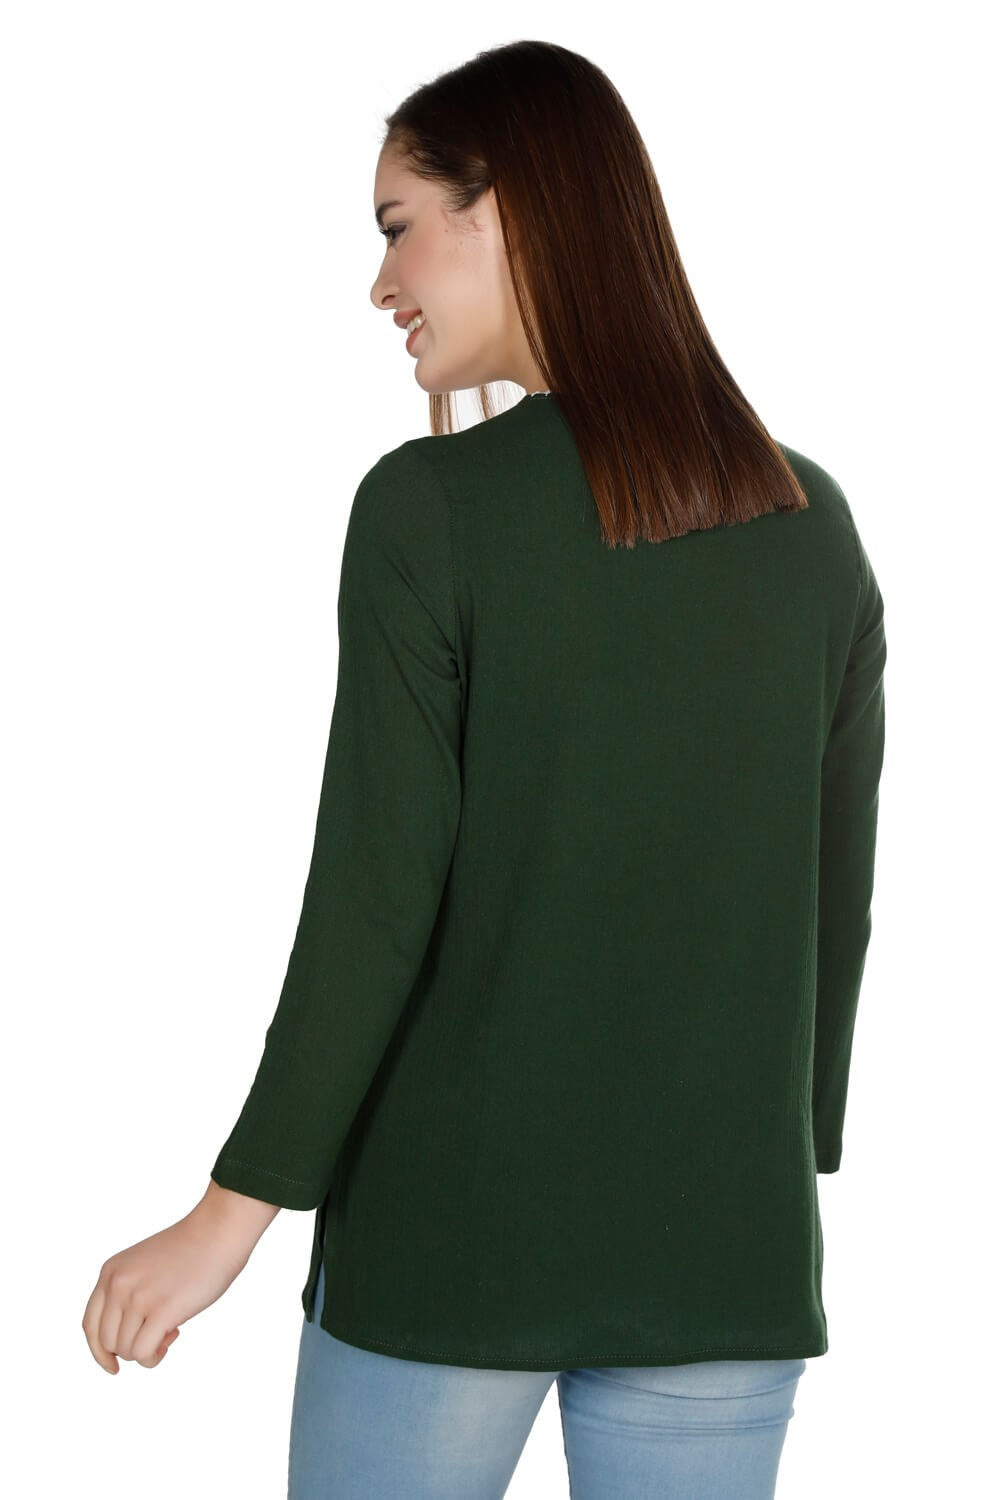 Women's Oversize Long Sleeves Embroidered Green Blouse